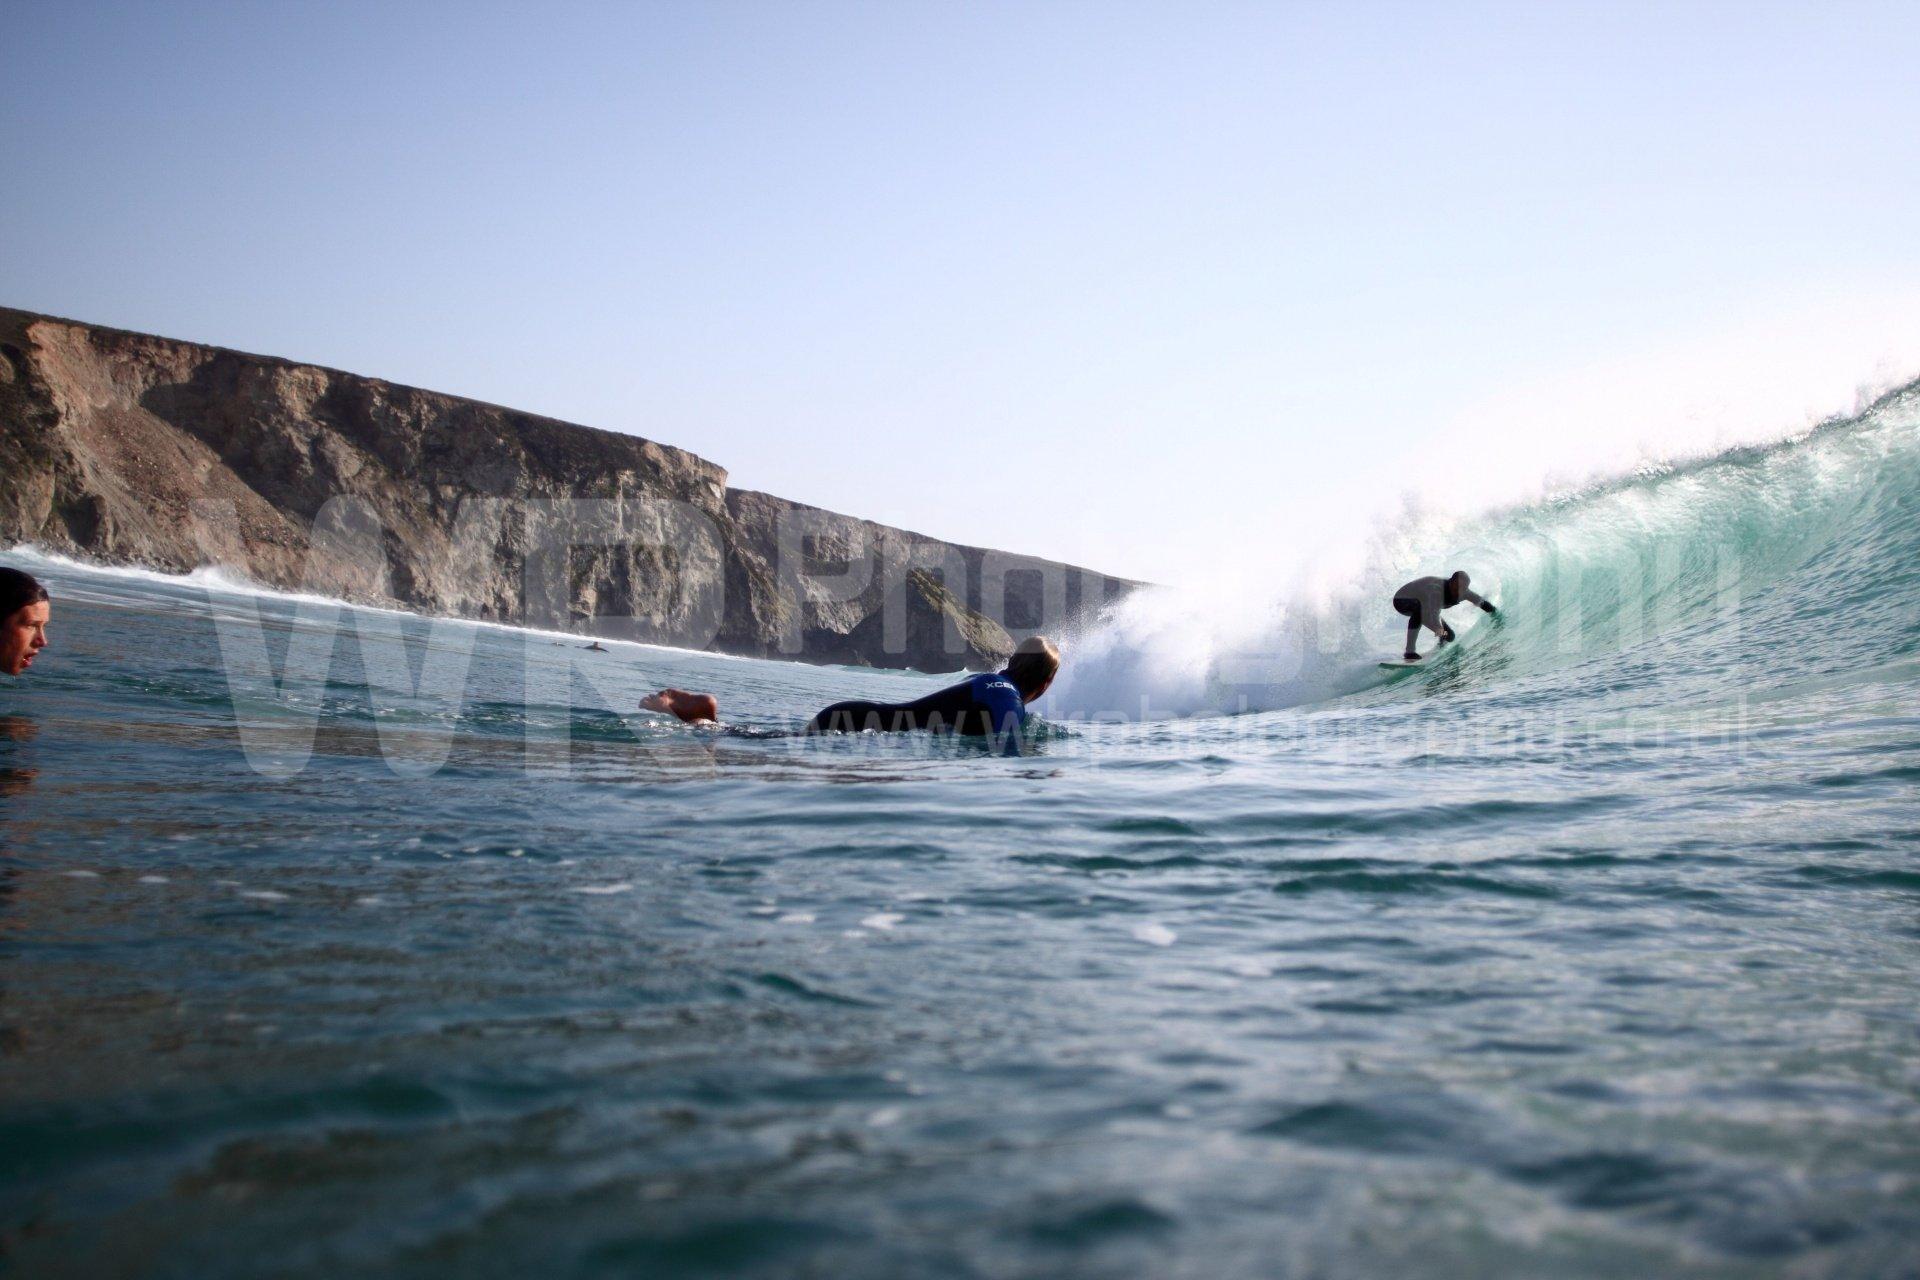 Will Reddaway's photo of Porthtowan